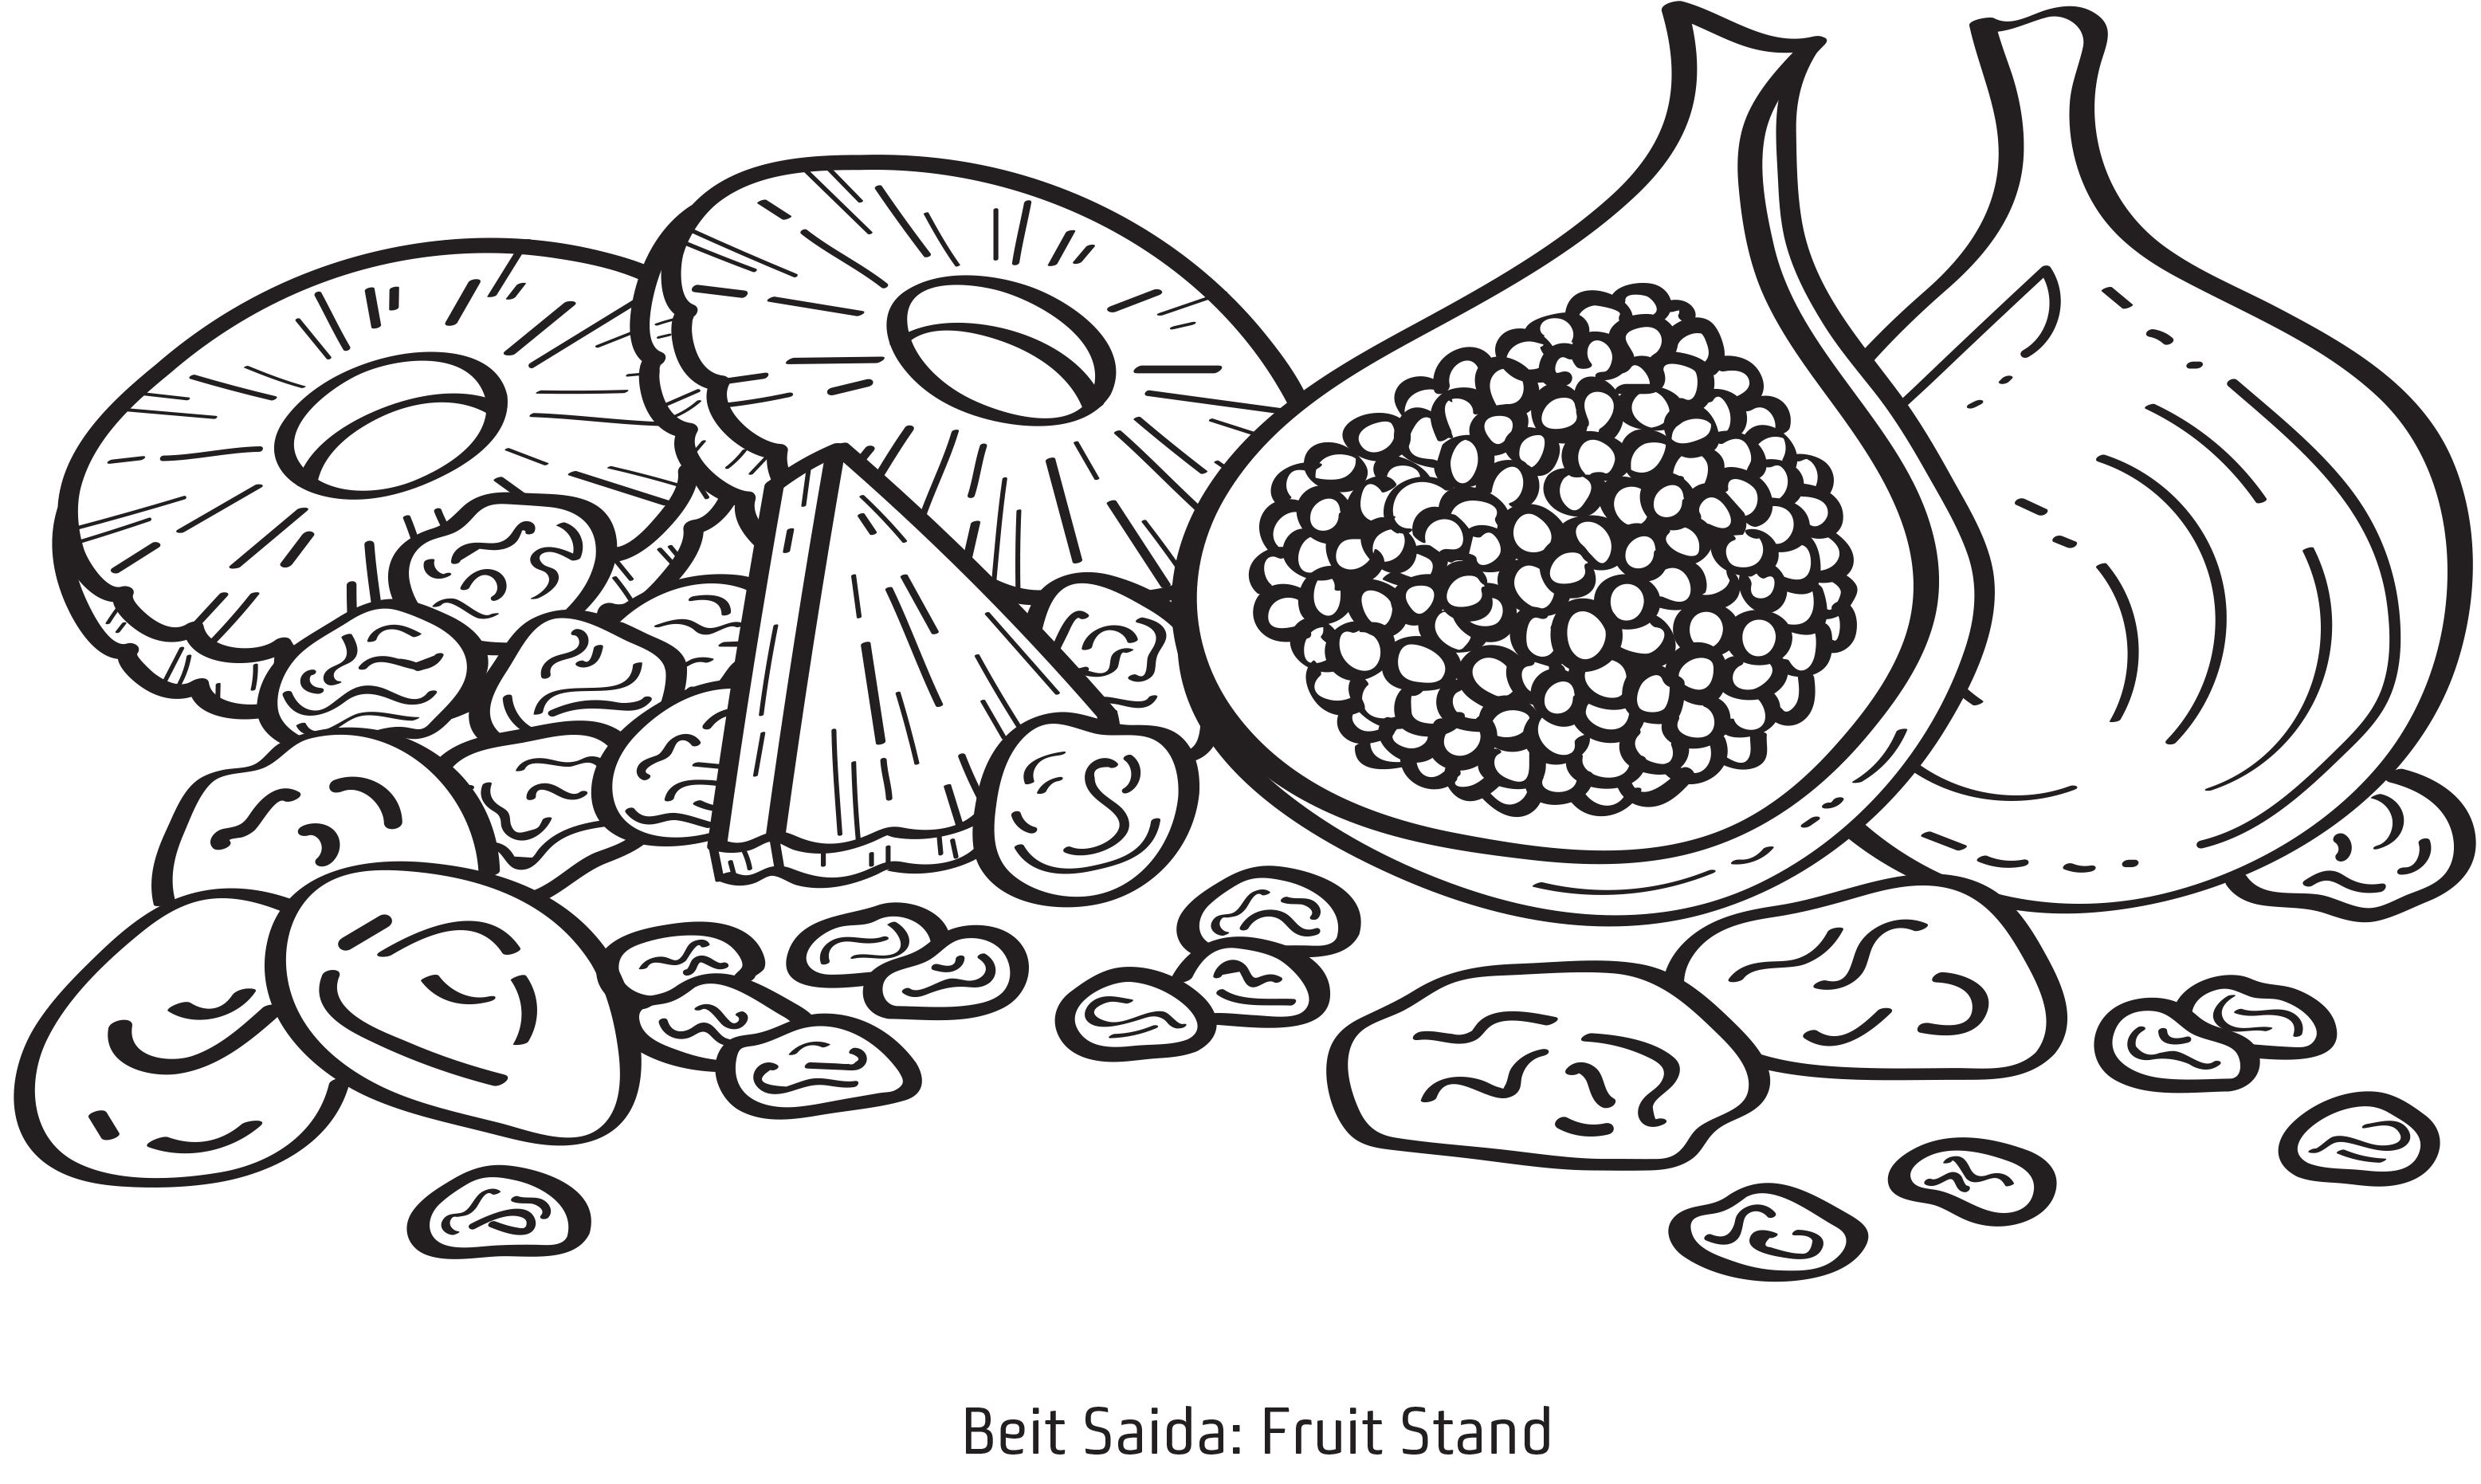 Beit Saida Coloring Sheet Sea of Miracles VBX 2018